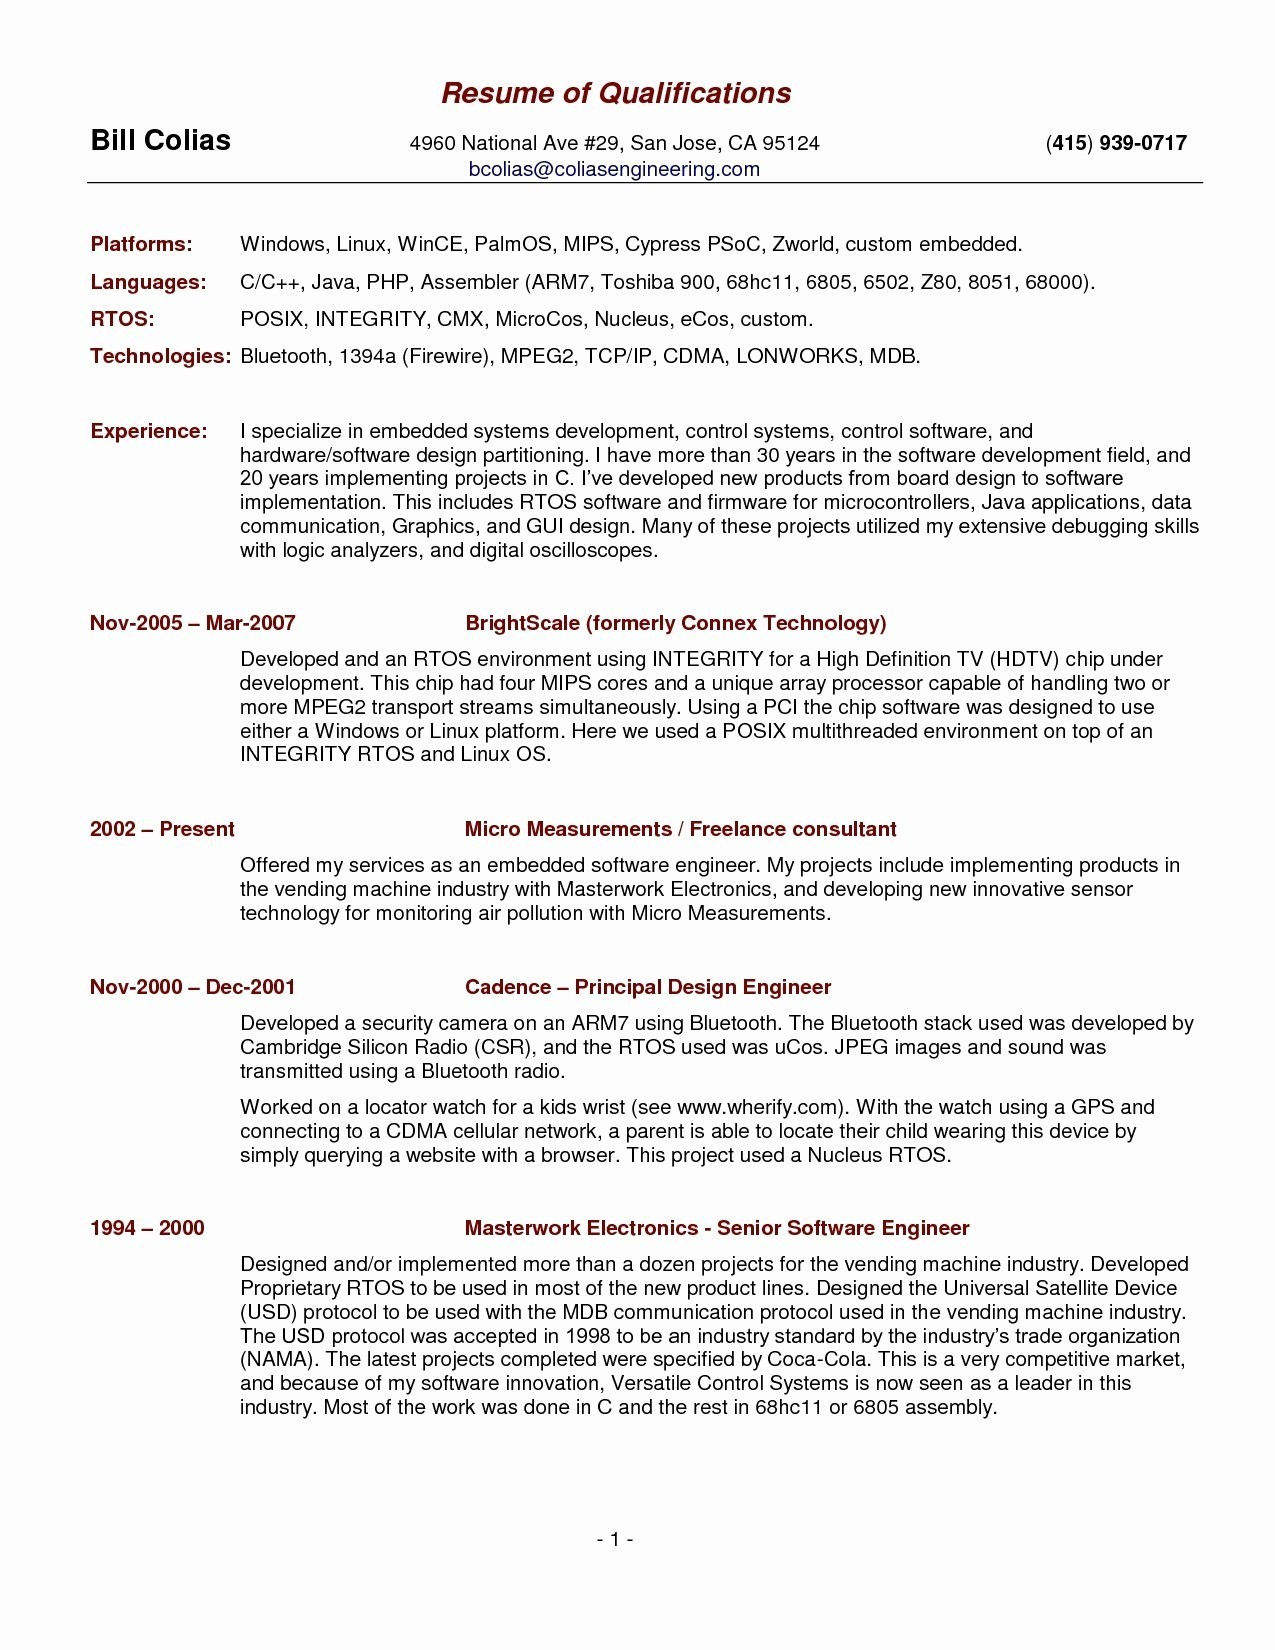 Quick Resume Template - I Need A Resume Fast Luxury Fresh Pr Resume Template Elegant